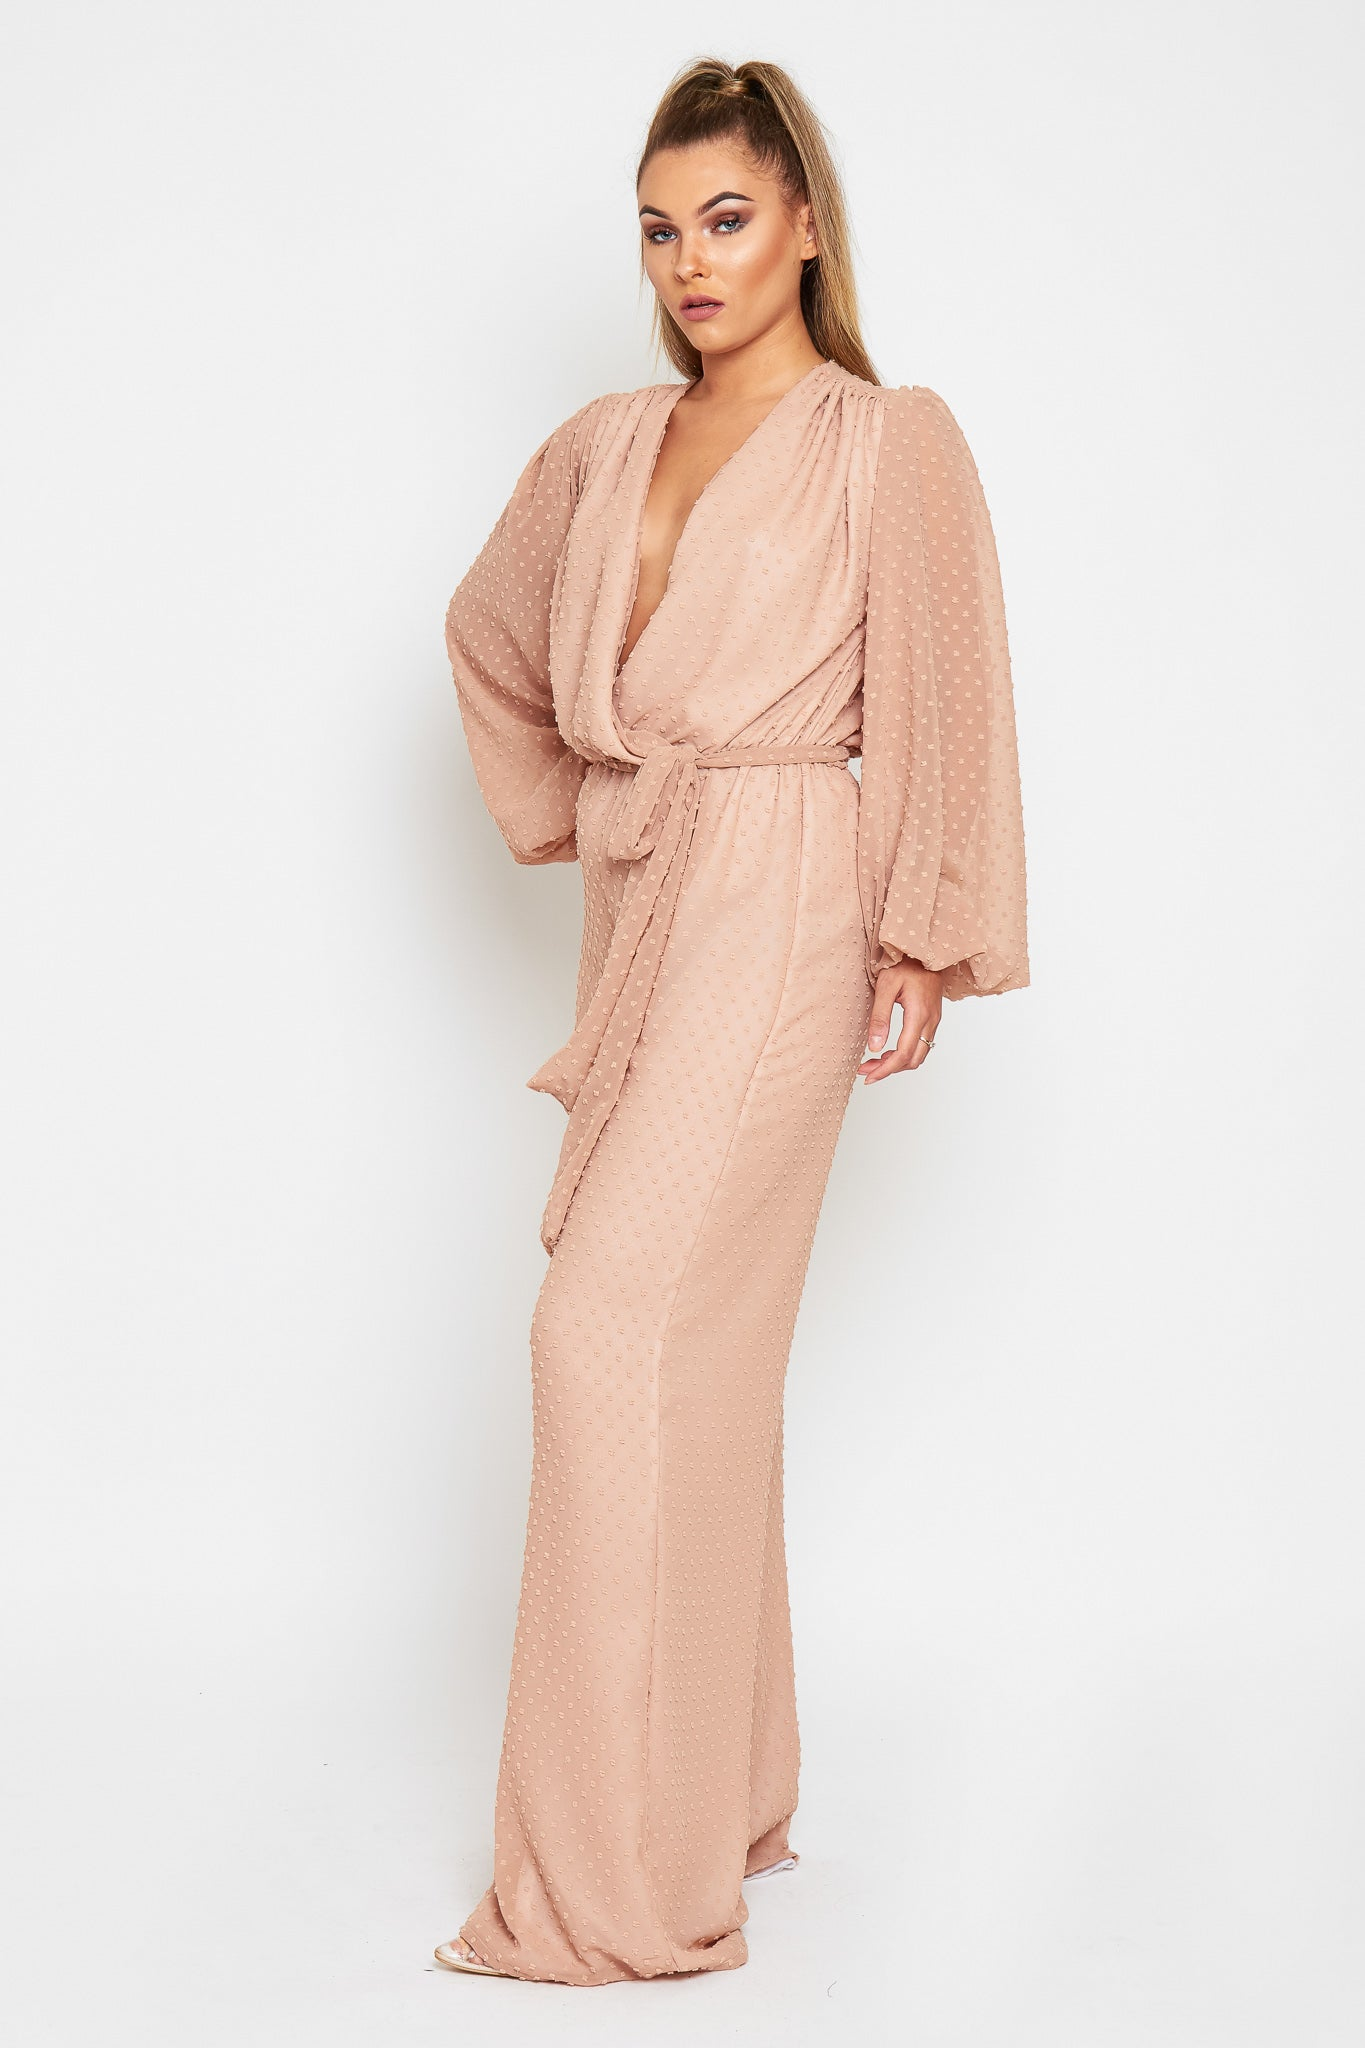 GRACE Polka Dot Chiffon Nude Loose Leg Jumpsuit (more colours available)